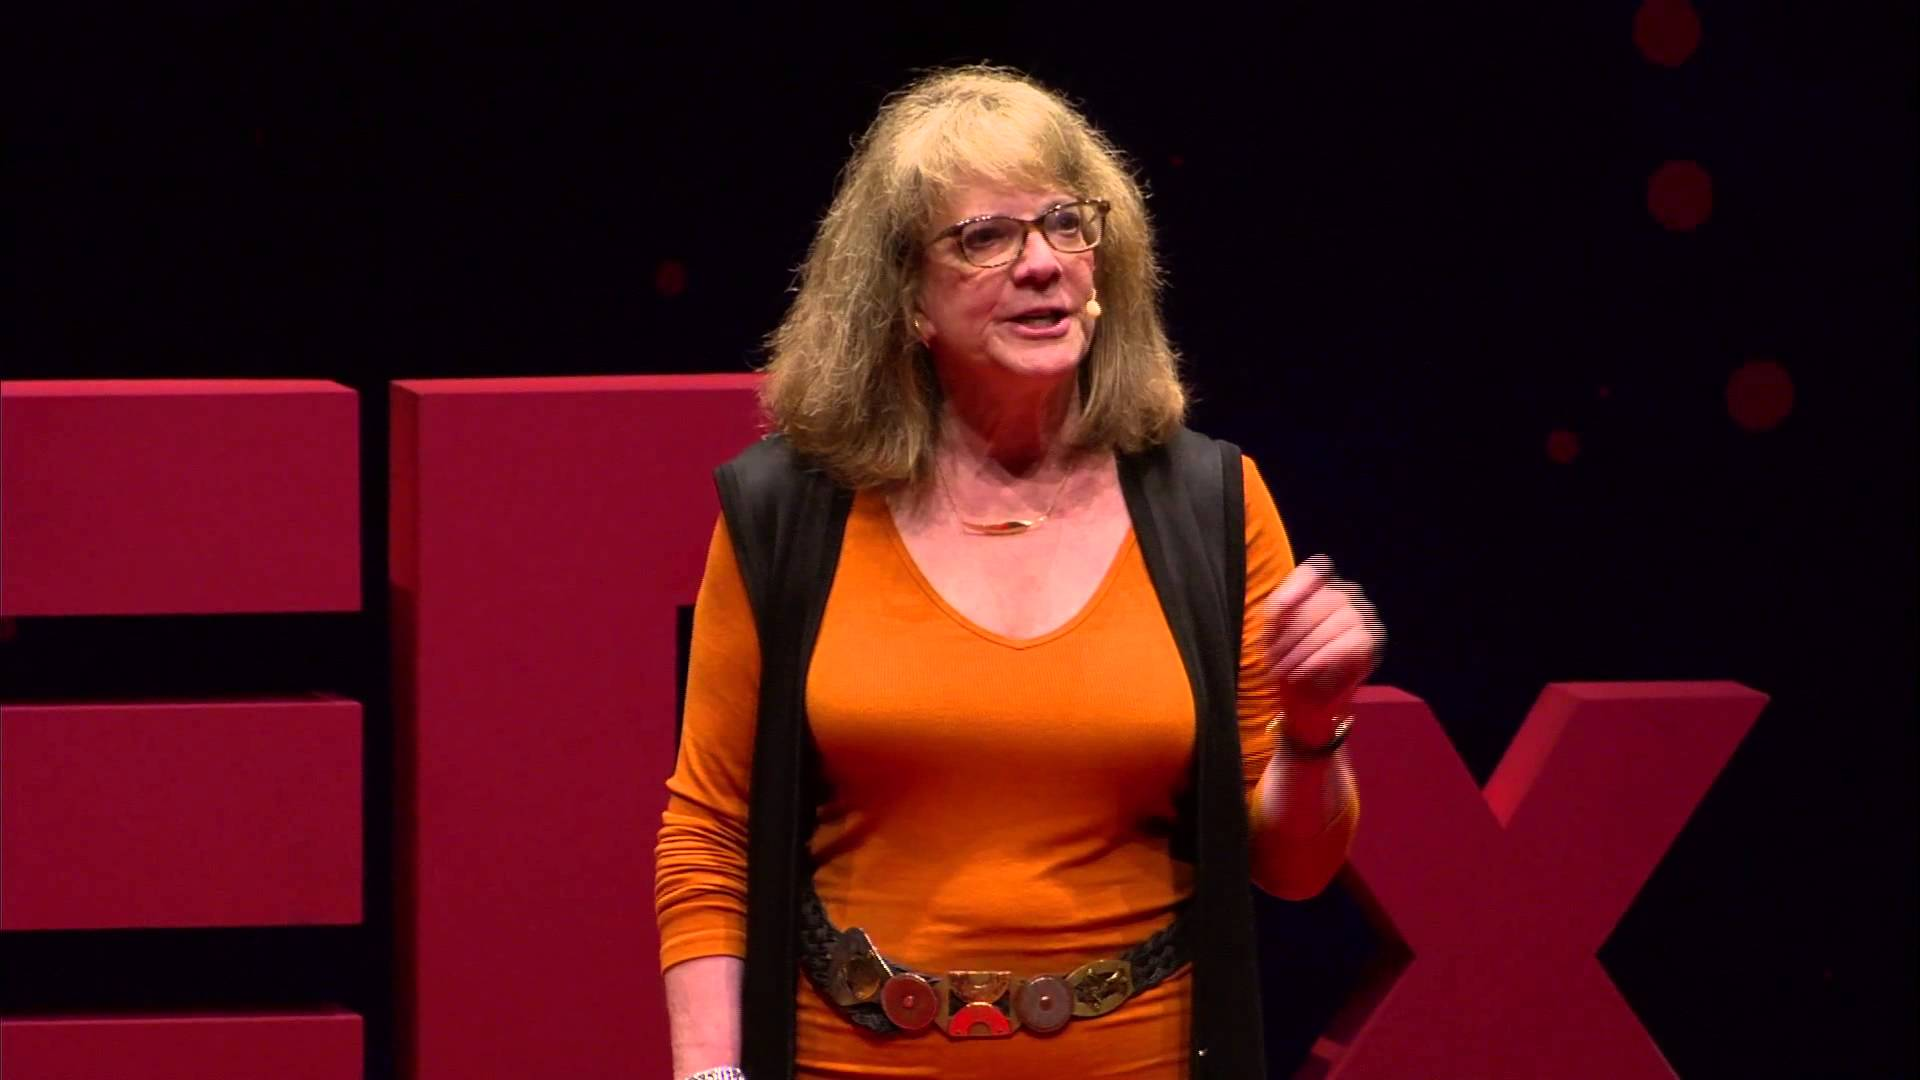 elizabeth loftus Psychologist elizabeth loftus studies memories more precisely, she studies false memories, when people either remember things that didn't happen or remember them differently from the way they really were it's more common than you might think, and loftus shares some startling stories and statistics -- and raises some important ethical questions.